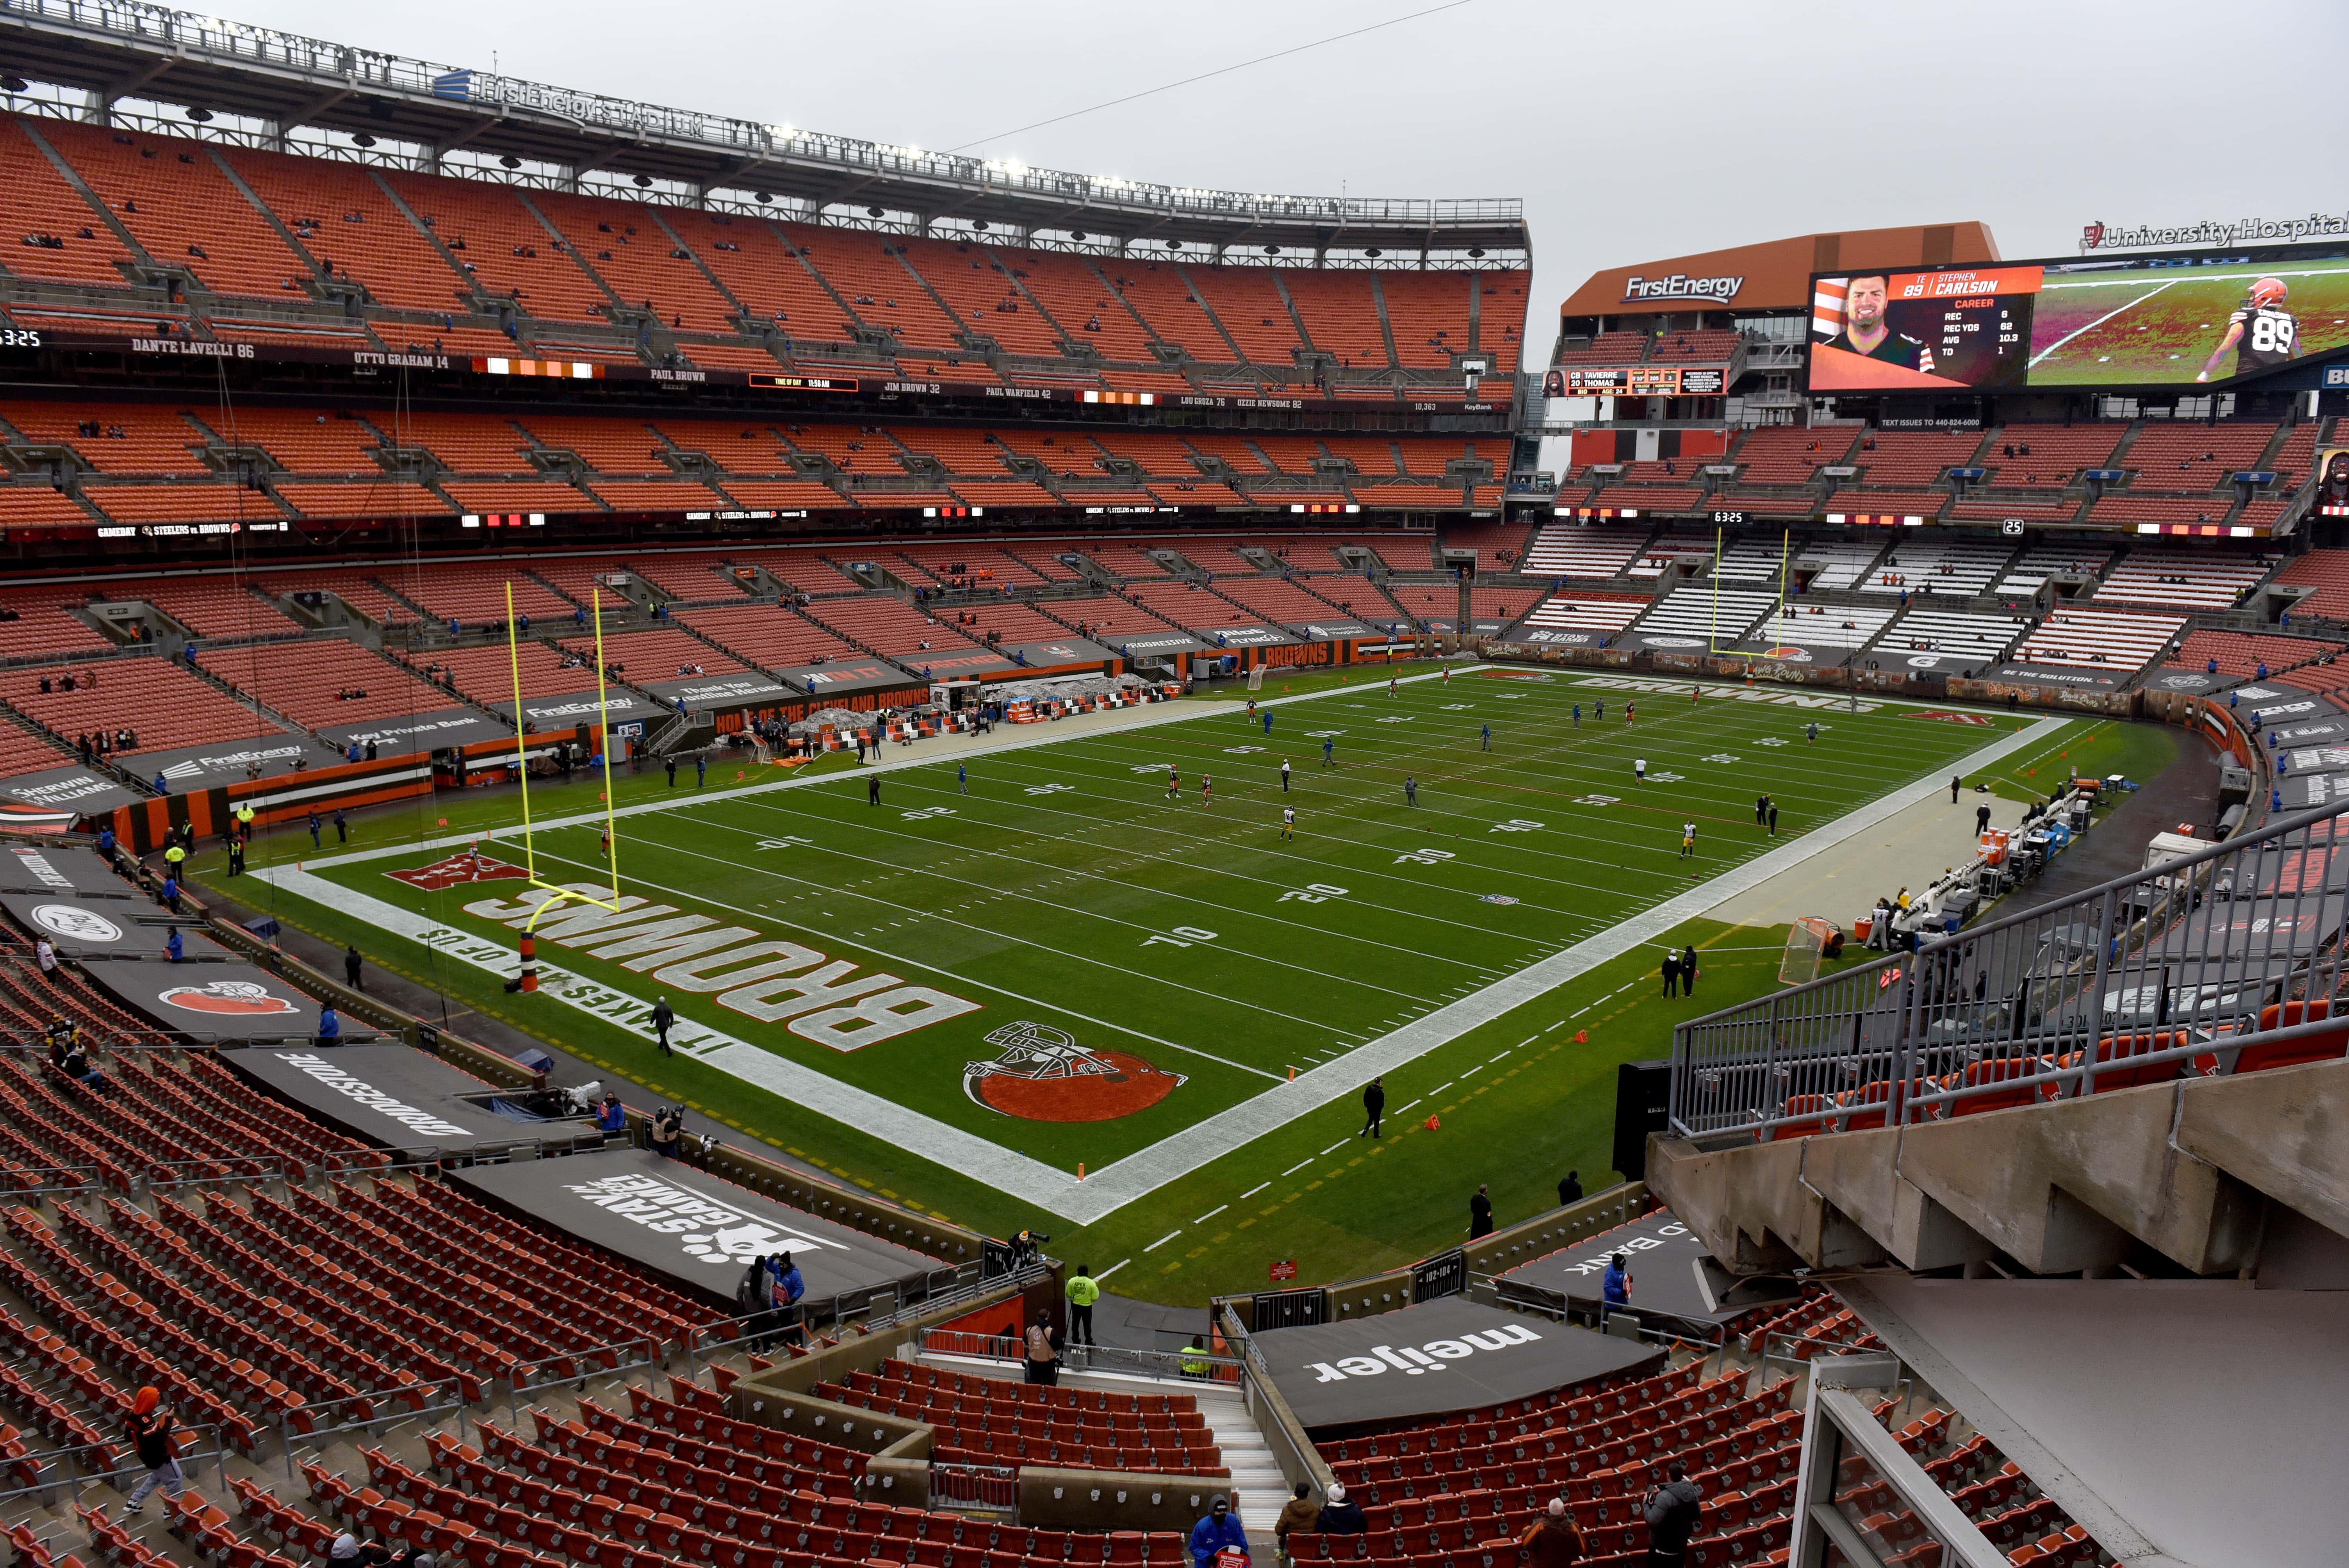 Christmas At Firstenergy Stadium 2021 2021 Nfl Draft Date Location Time How To Live Stream Schedule And All You Need To Know About The Annual Tradition Meaww